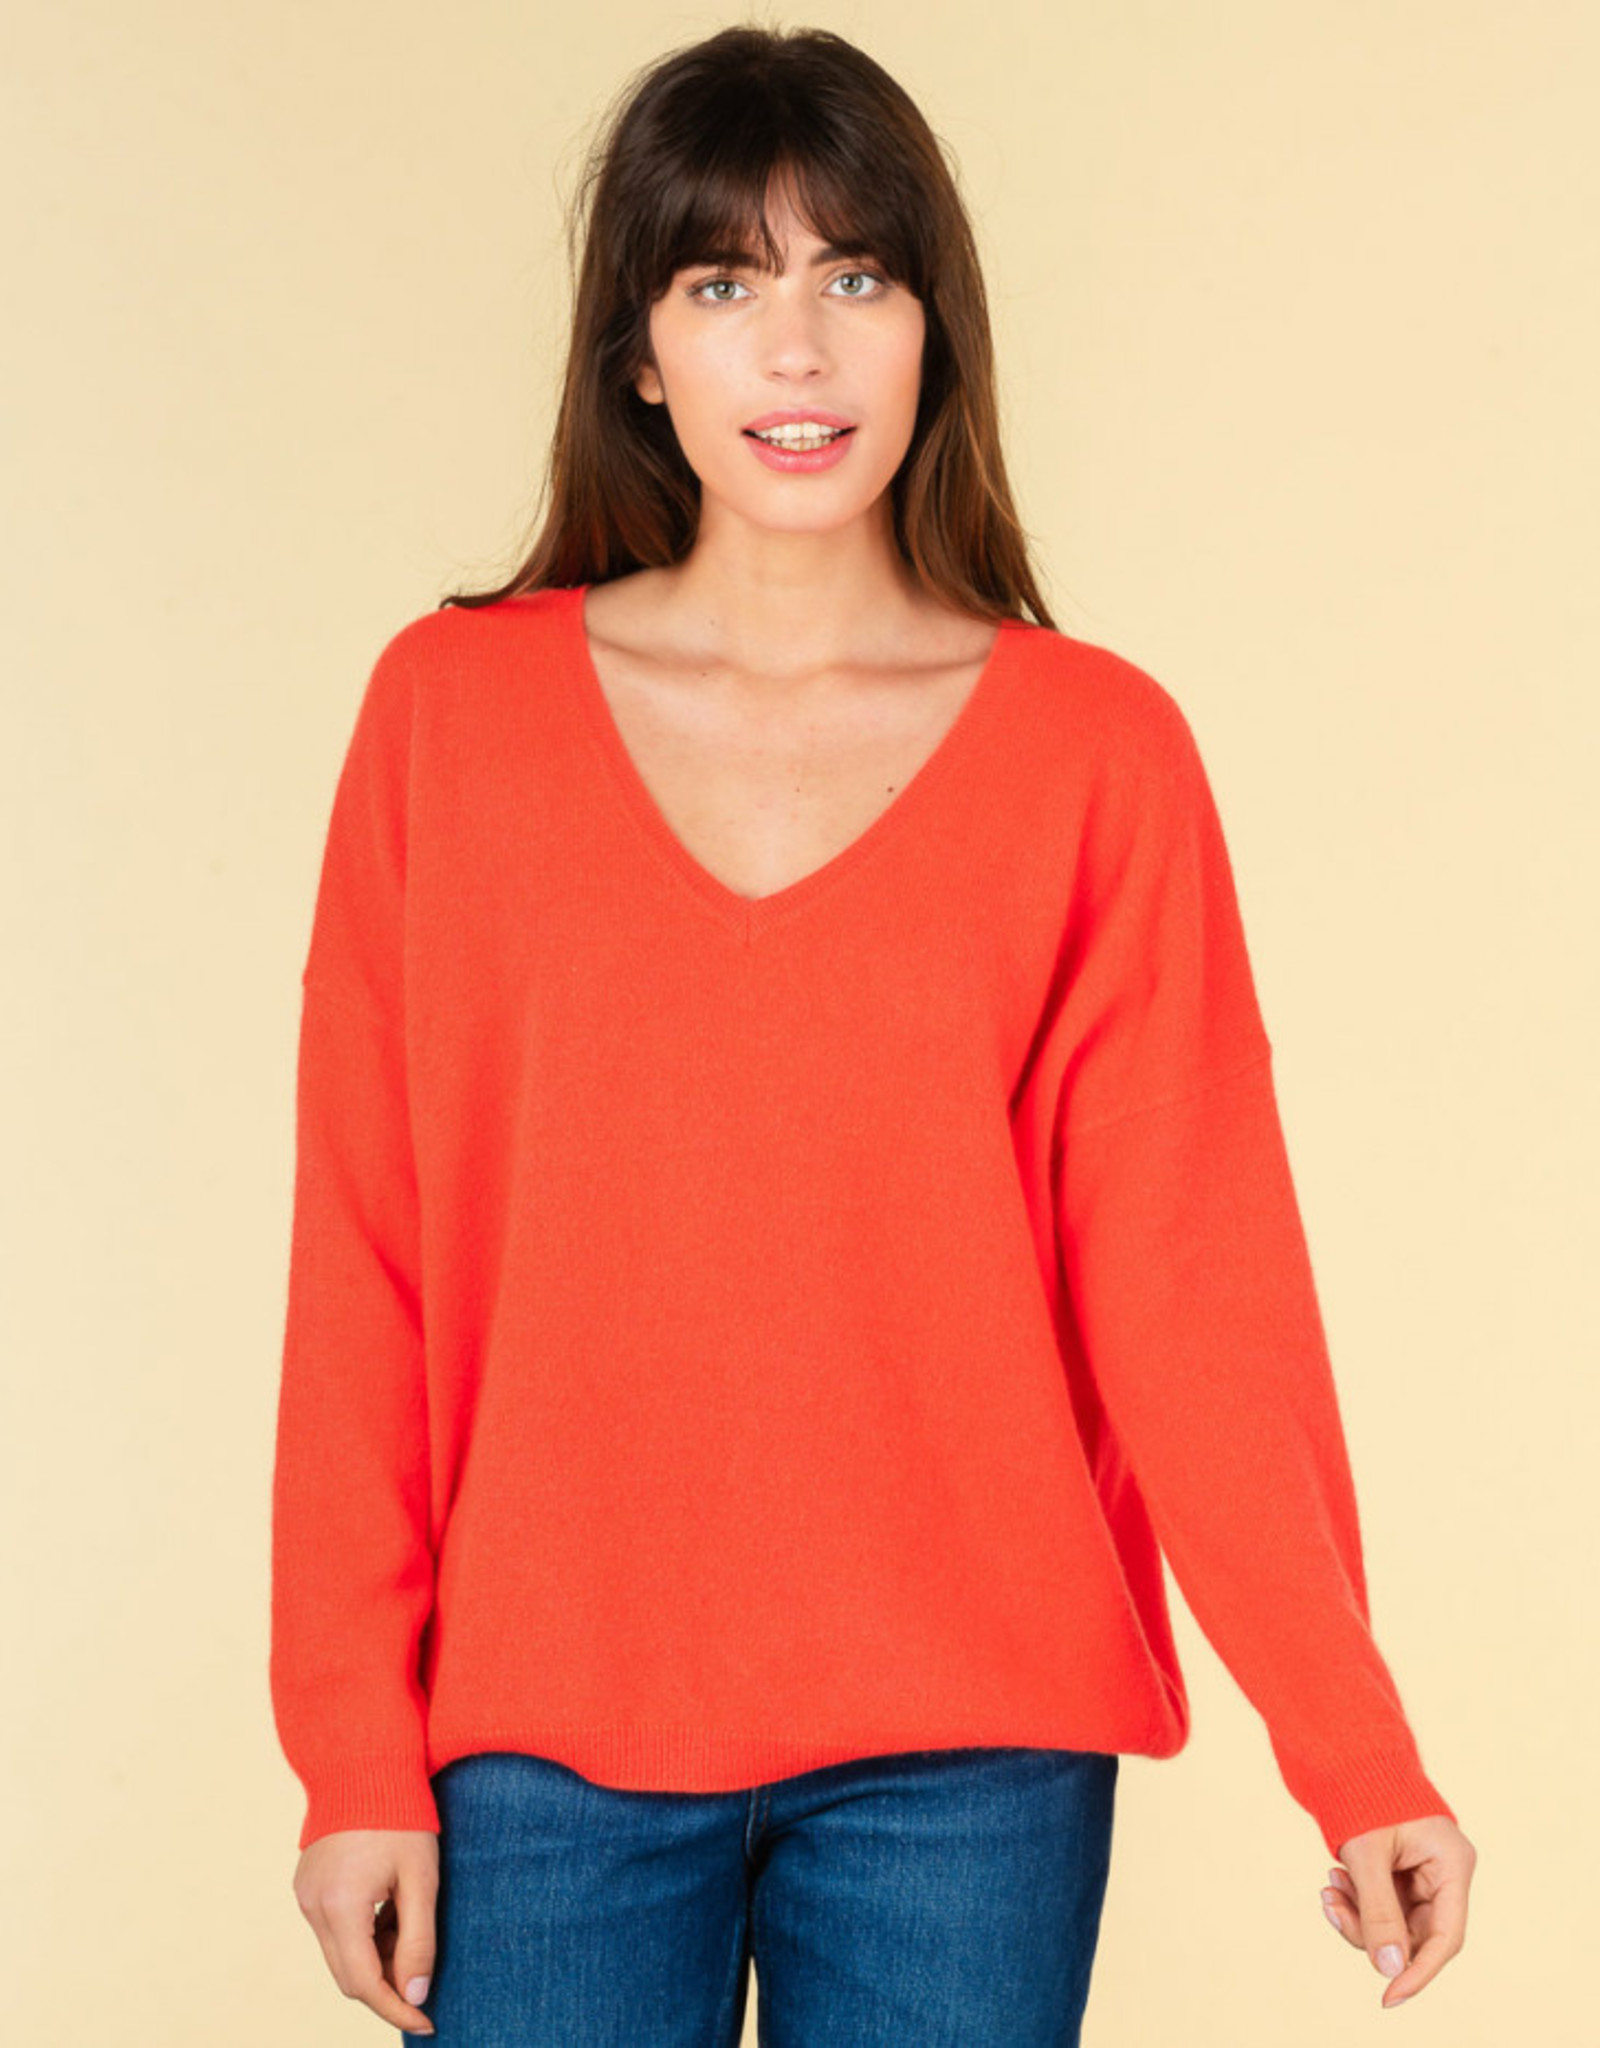 Absolut Cashmere ANGELE CORAIL FLUO